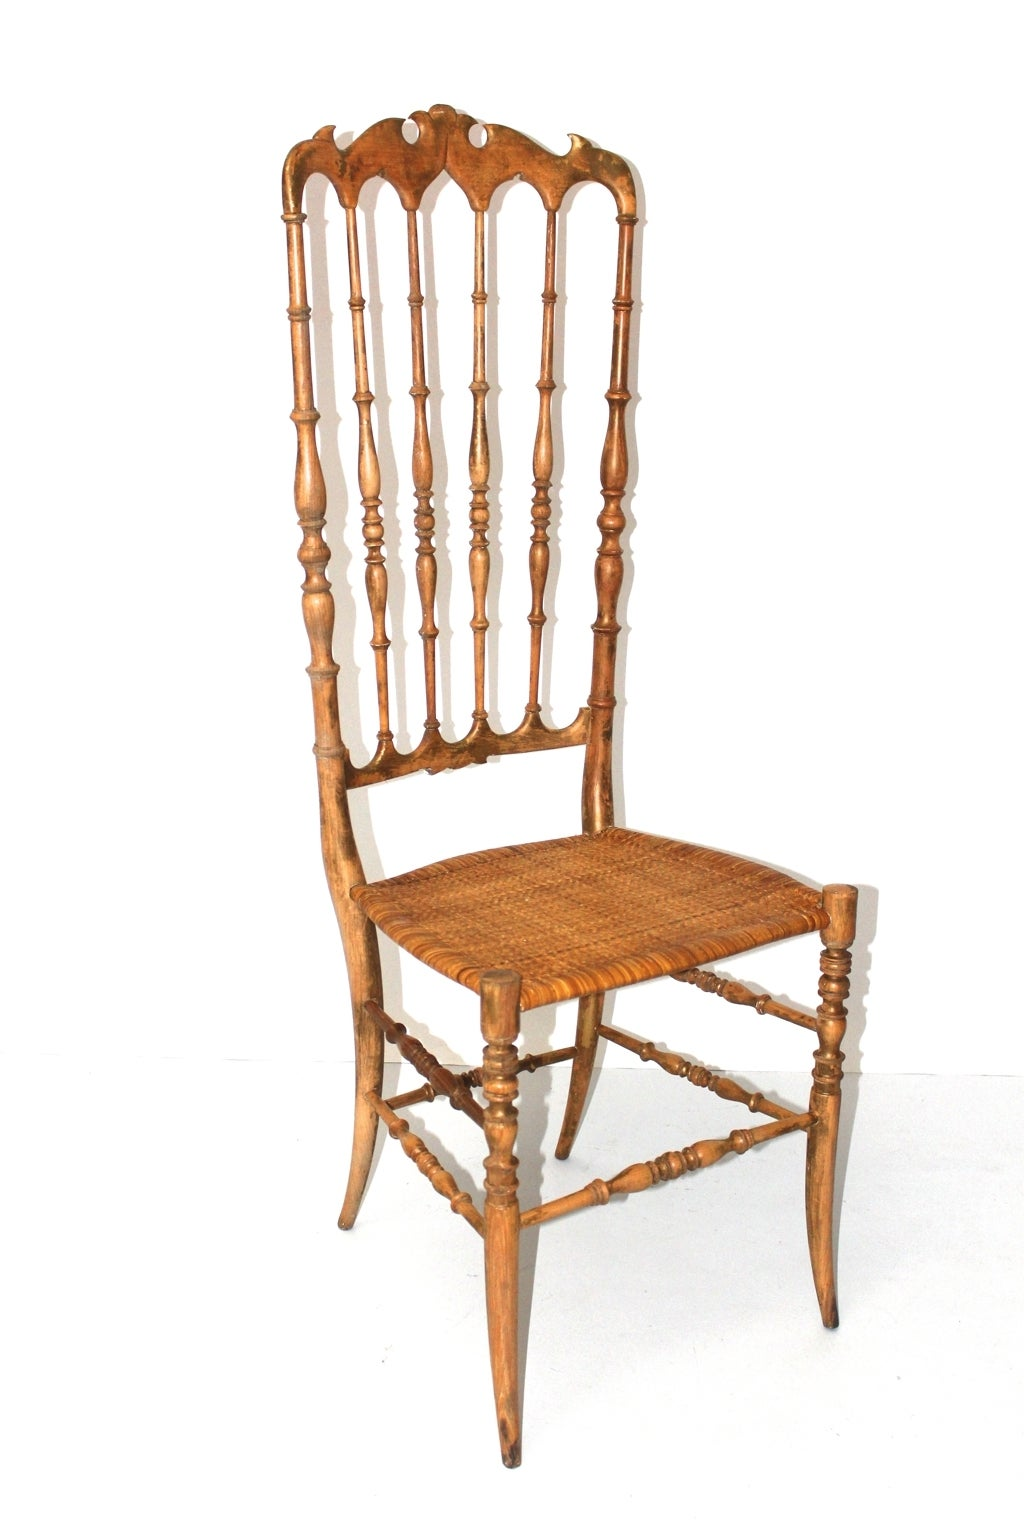 Important design!